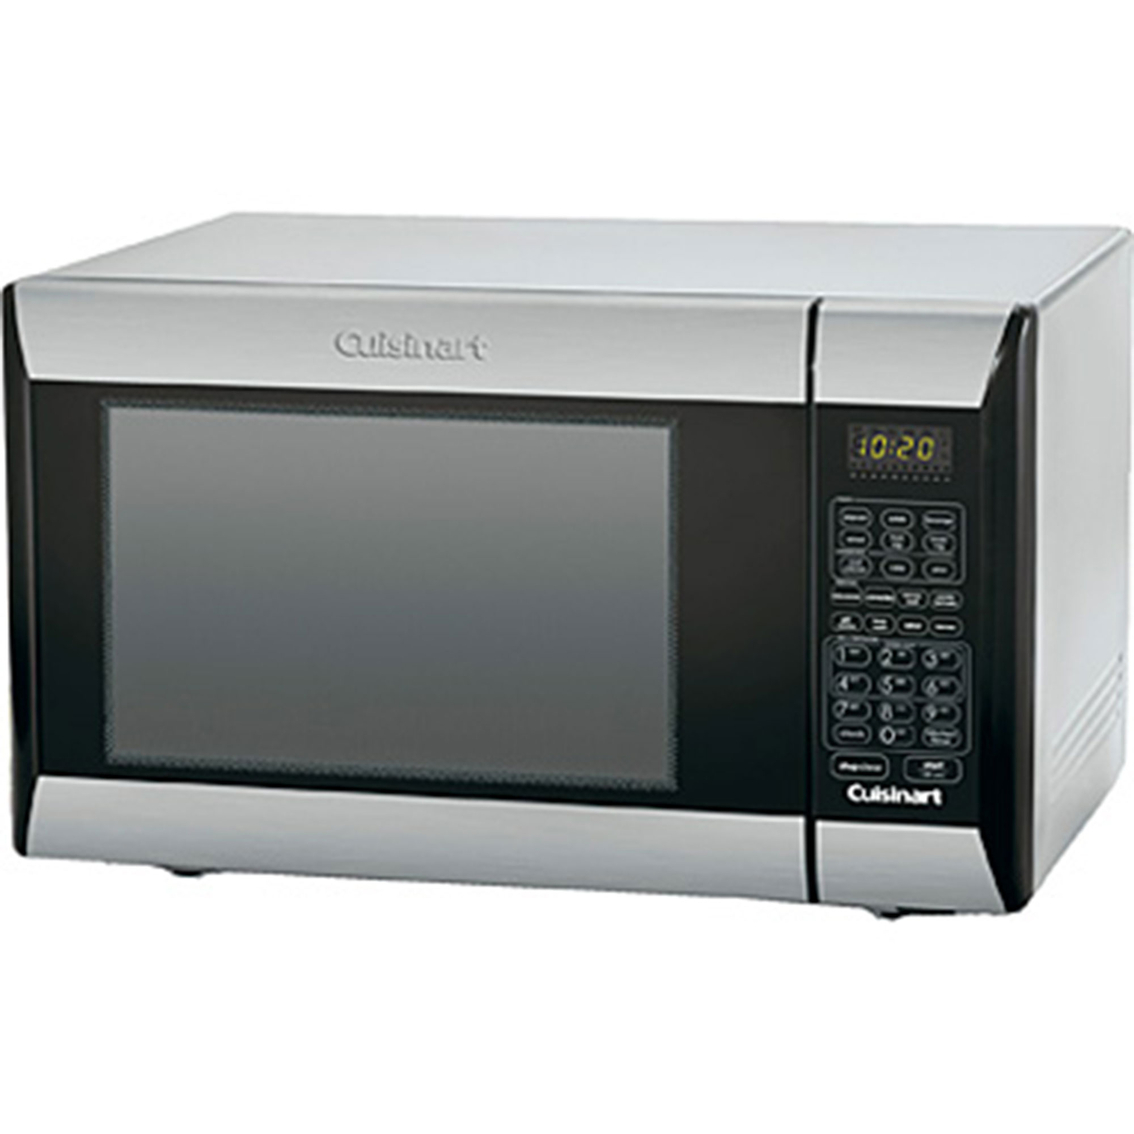 Compare Grill And Convection Microwave Oven: Cuisinart Convection Microwave Oven With Grill